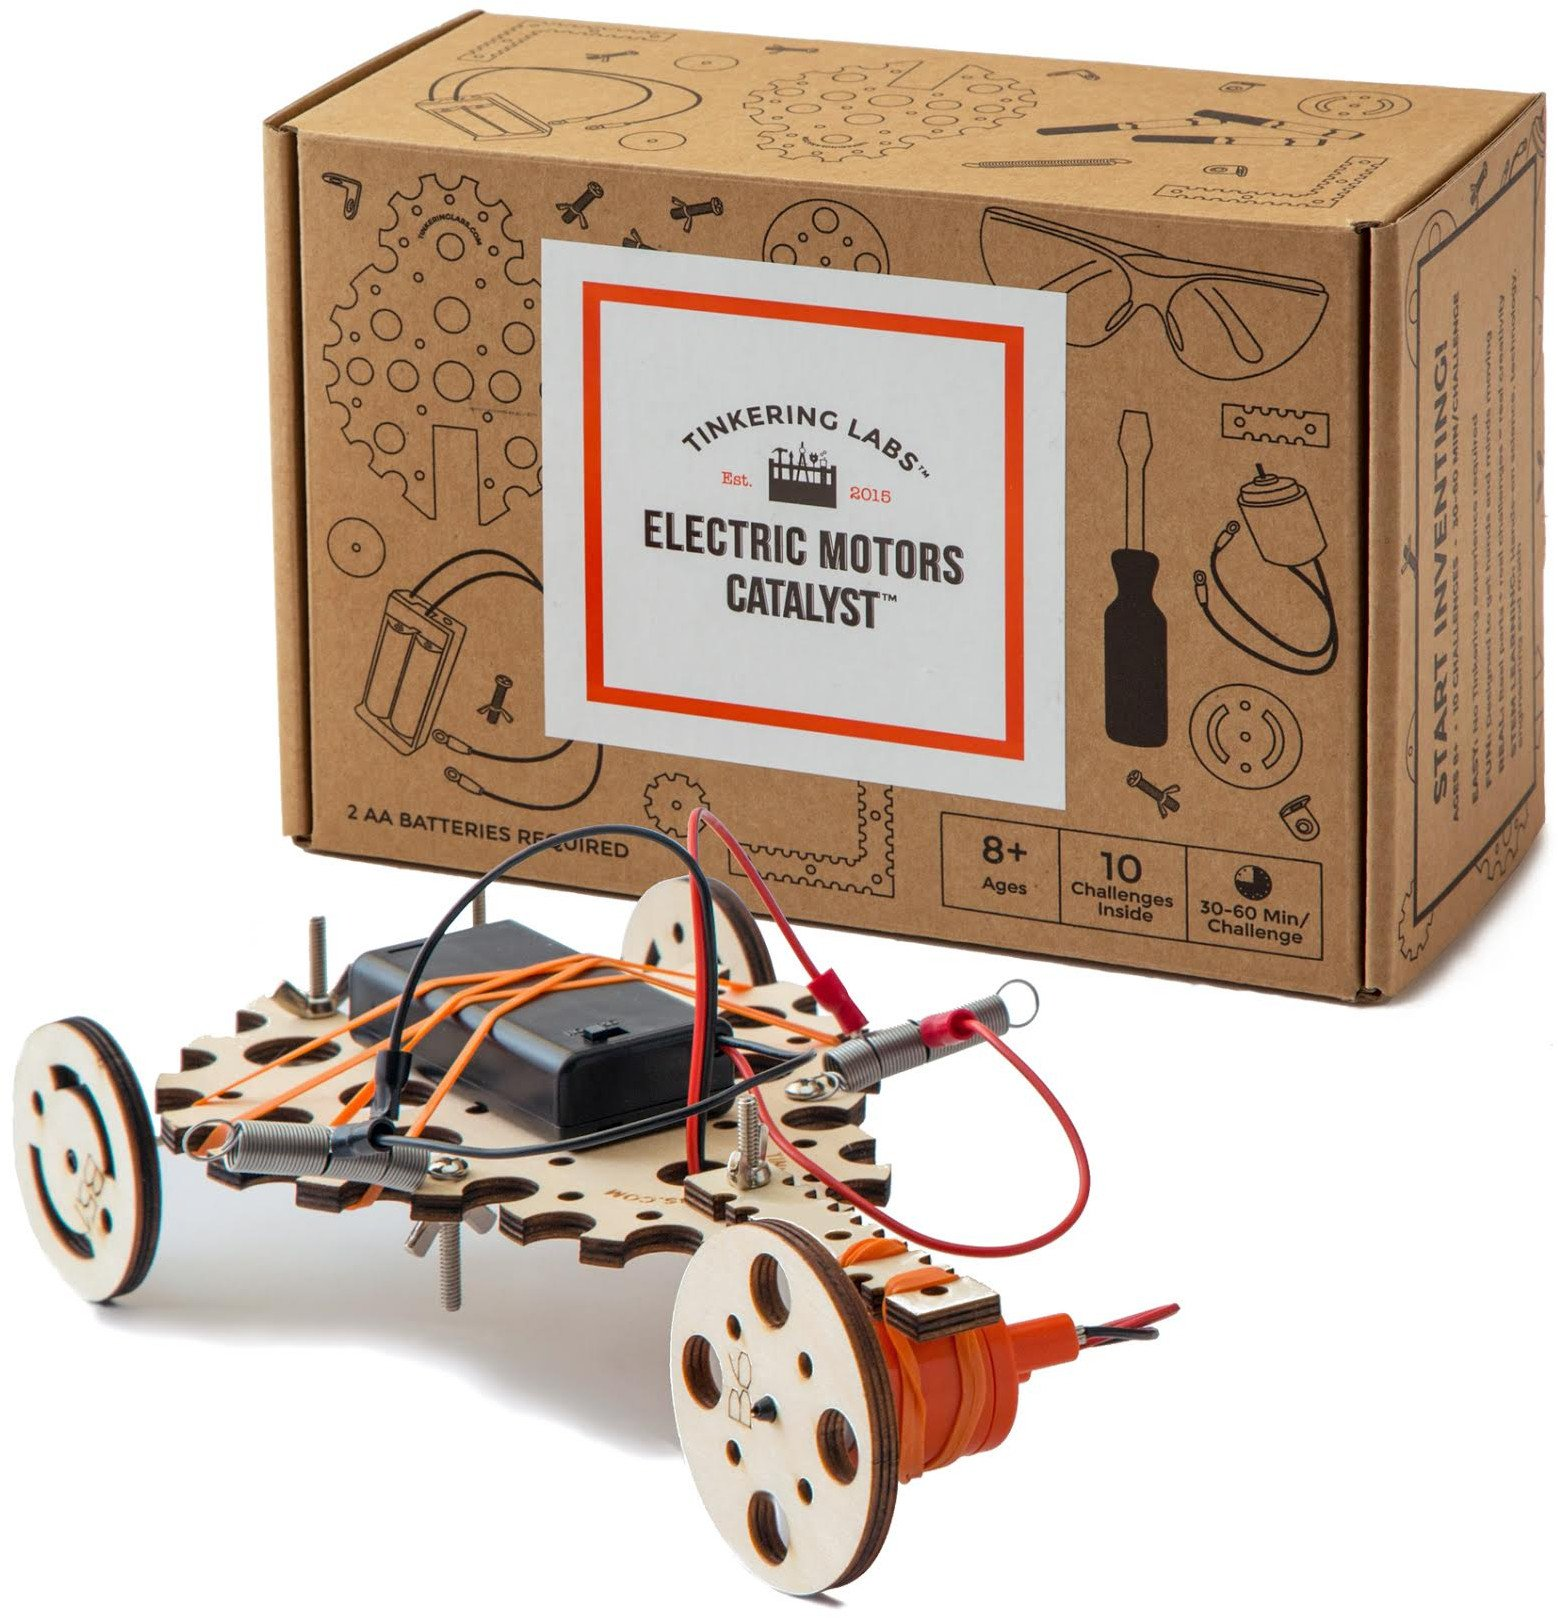 Tinkering Labs Electric Motors Catalyst, Robotics Stem Kit for Kids Age 8-12 by Tinkering Labs